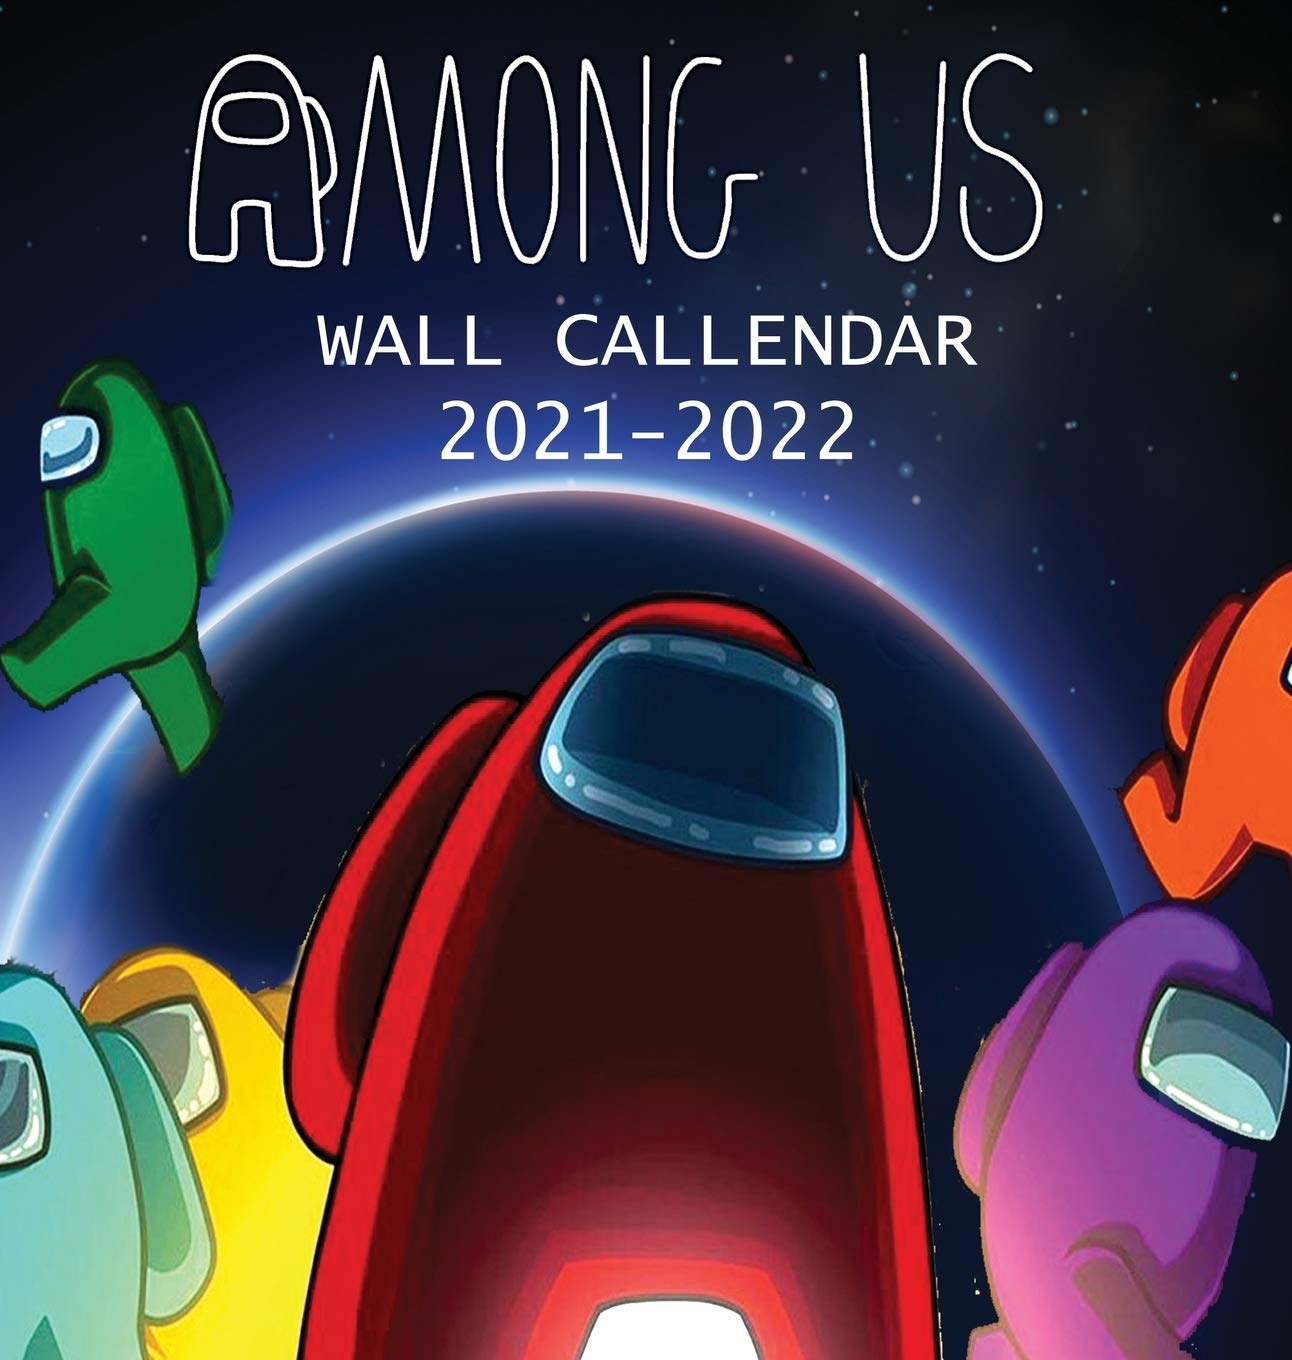 2022 Us Calendar.2021 2022 Among Us Wall Calendar Among Us Imposter And Characters 8 5x8 5 Inches Large Size 18 Months Wall Calendar Amazon In Parker Jordan Calendar 2020 2022 Among Us Books